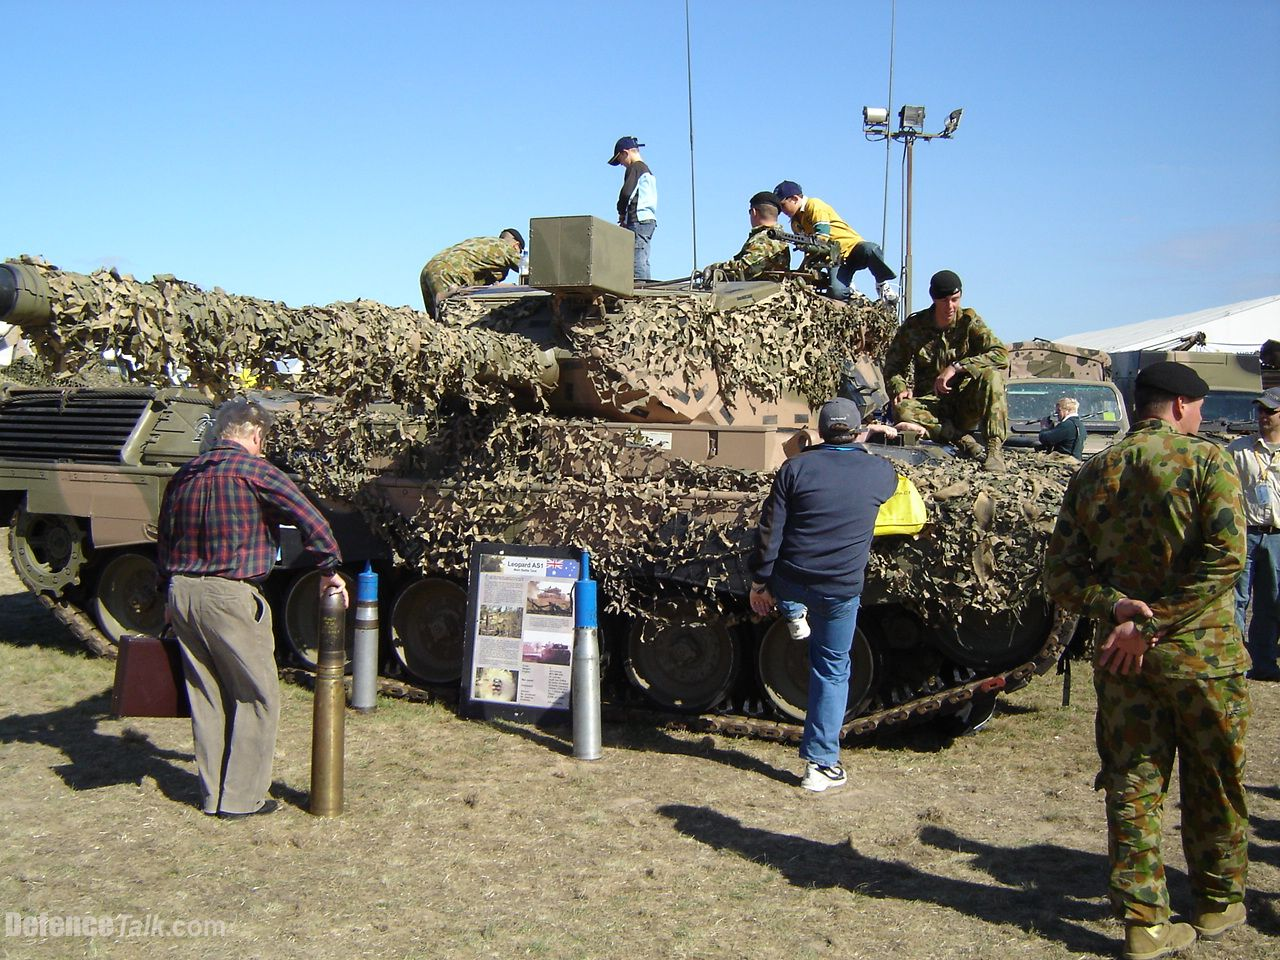 A Leopard AS1 MBT at Avalon Airshow